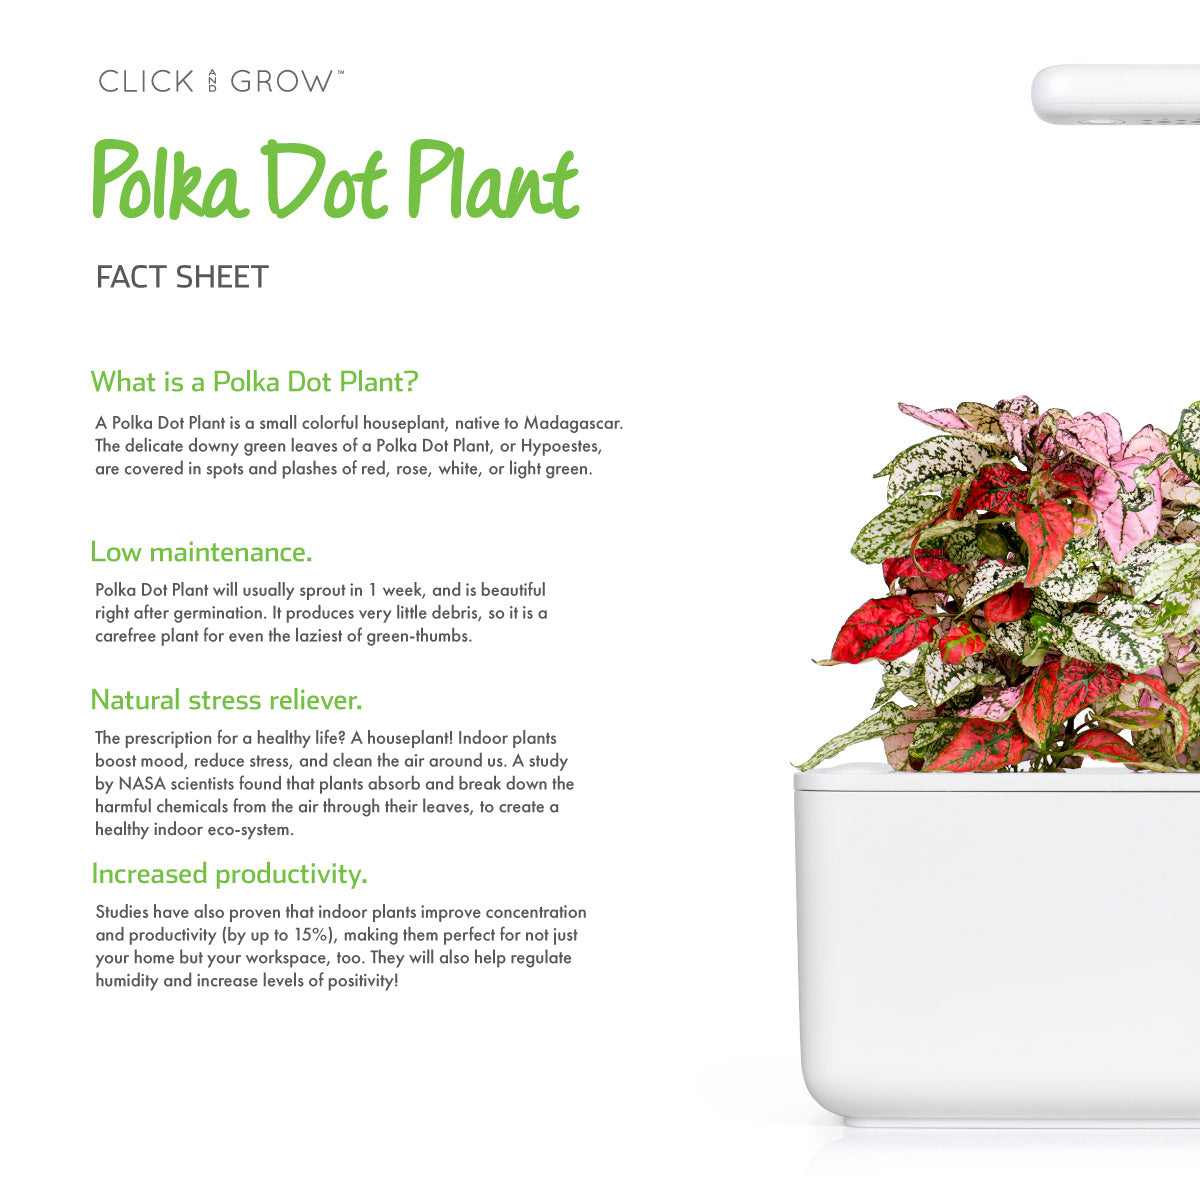 Polka Dot Flower (Hypoestes phyllostachya) - fact sheet. Click & Grow indoor garden.